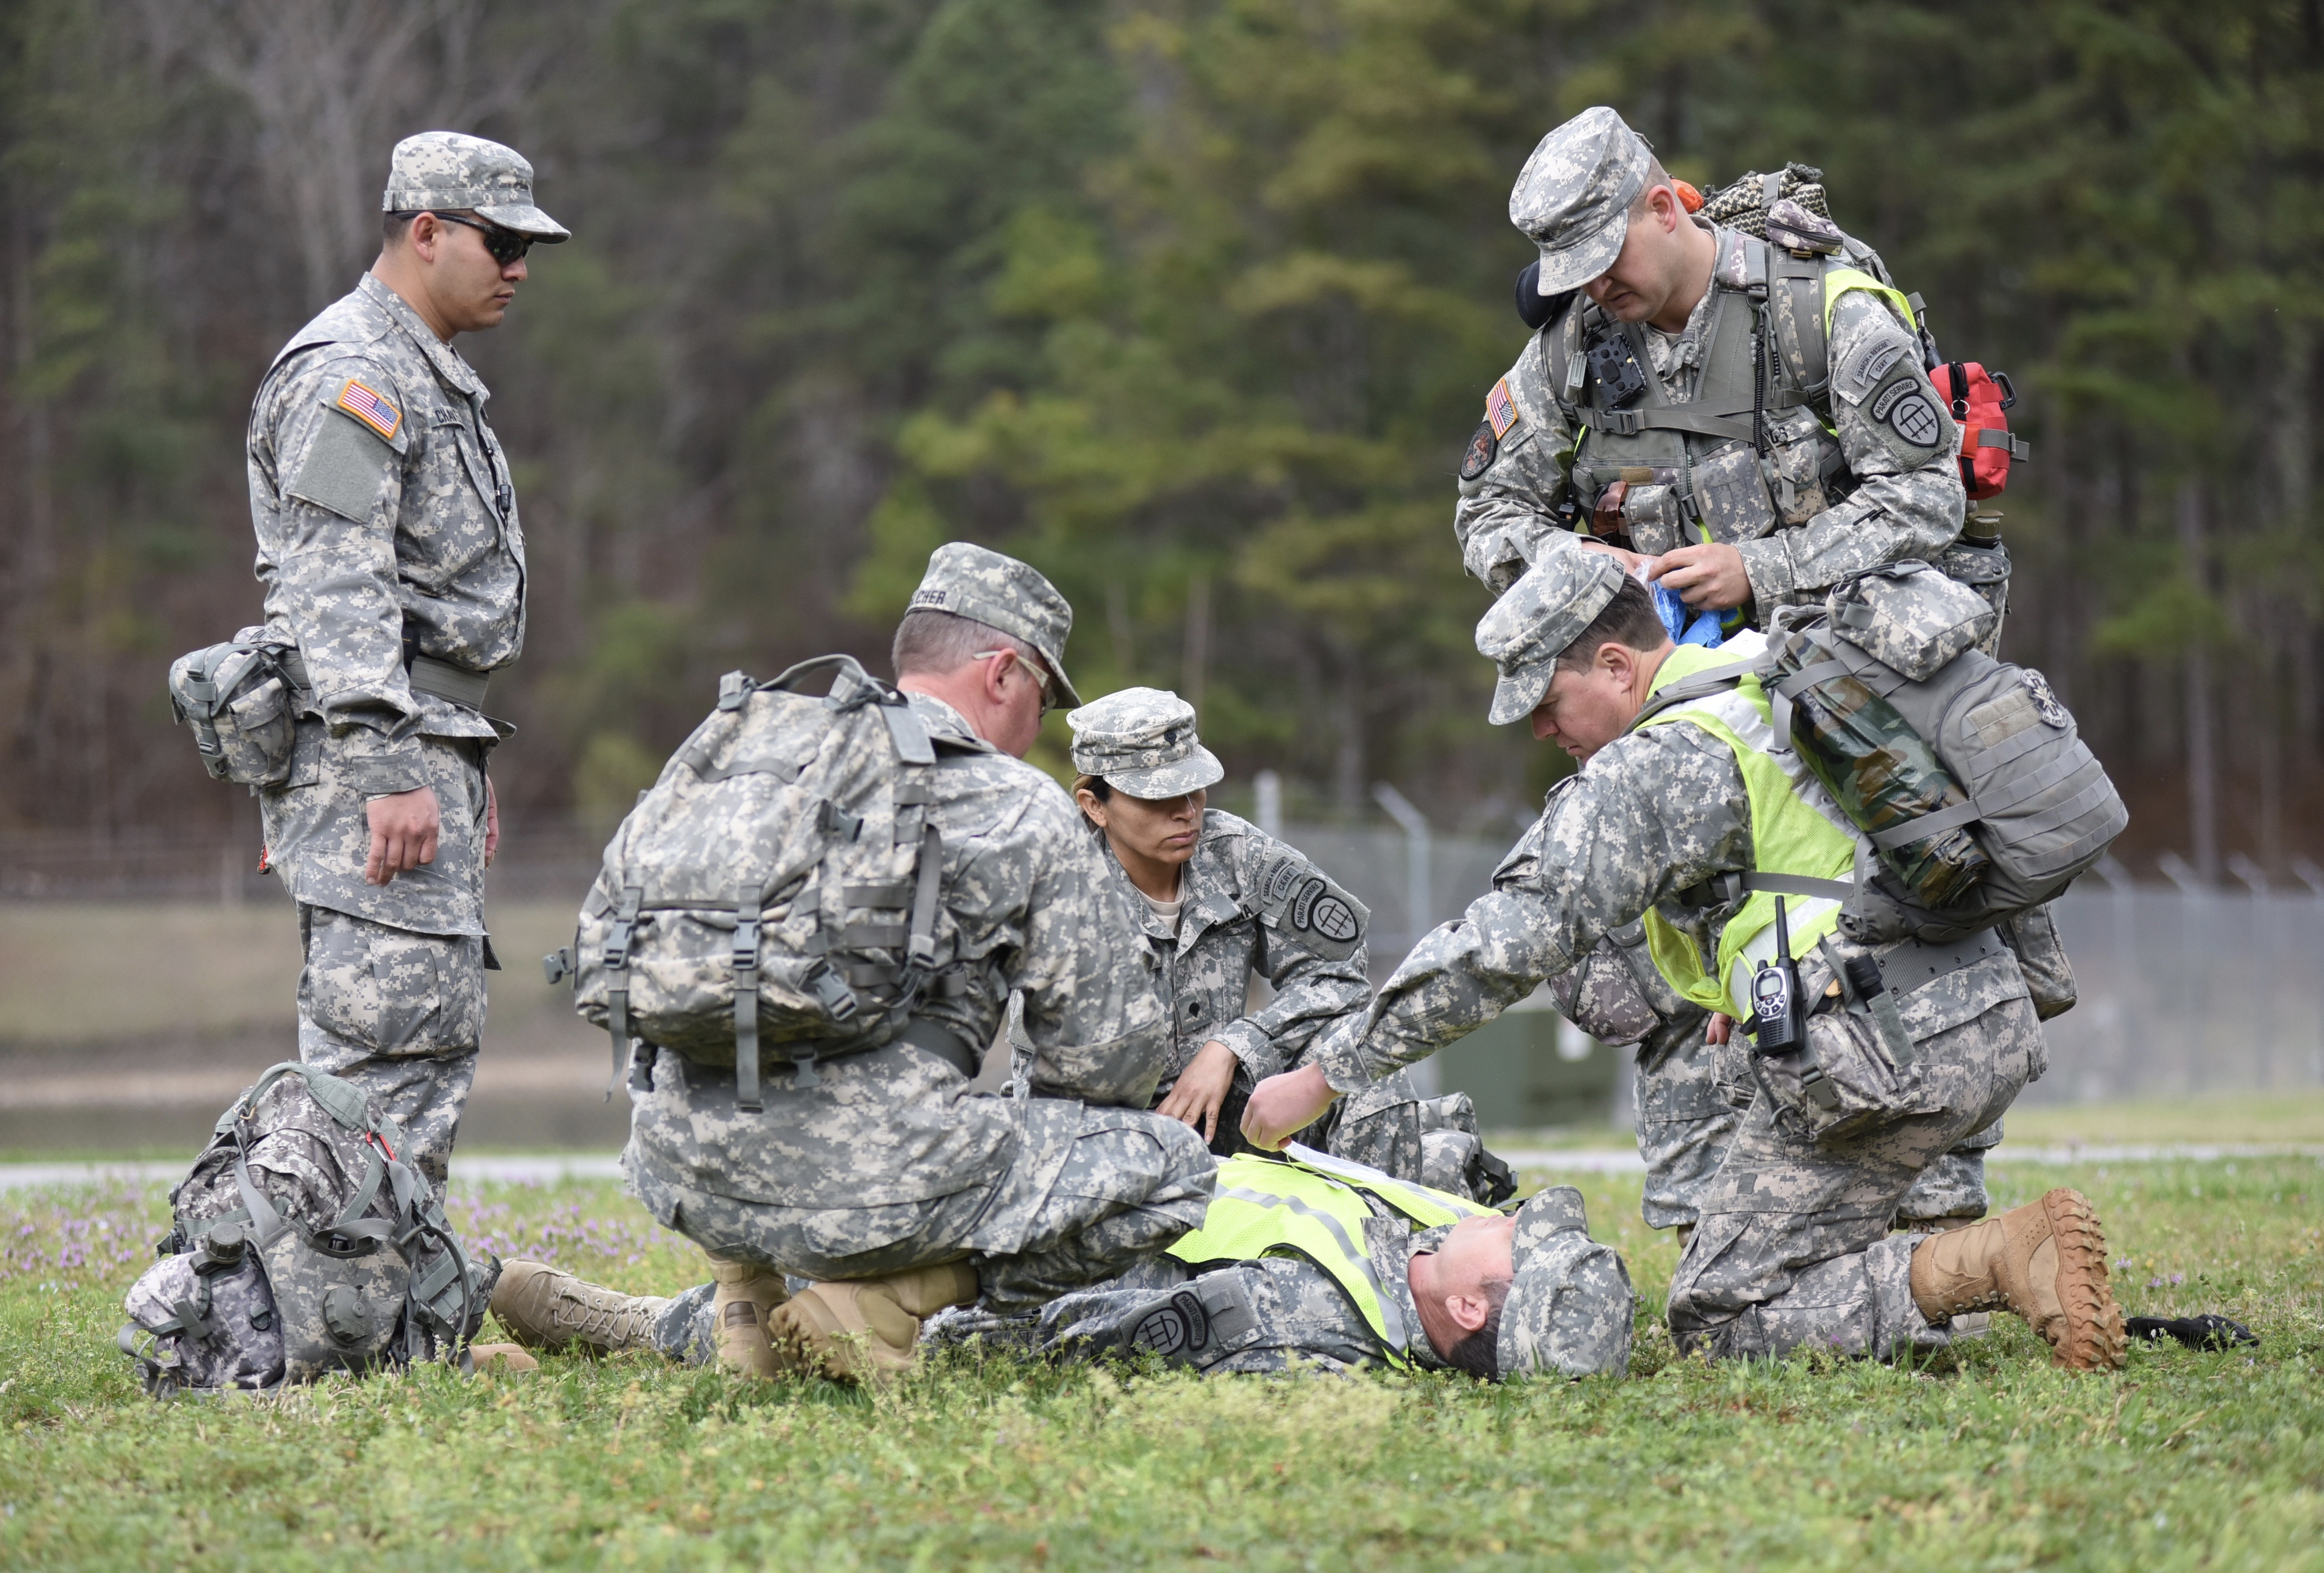 LAKE LANIER, Buford, Ga. Mar. 19, 2016 – Search team makes preliminary condition assessment of a casualty victim from the mock plane crash. The GSDF, Civil Air Patrol and United States Coast Guard Auxiliary joined the Multi-Agency Search & Rescue Mission to exercise the collaboration during the emergencies. Georgia State Defense Force photo by Pfc. Alexander Davidson